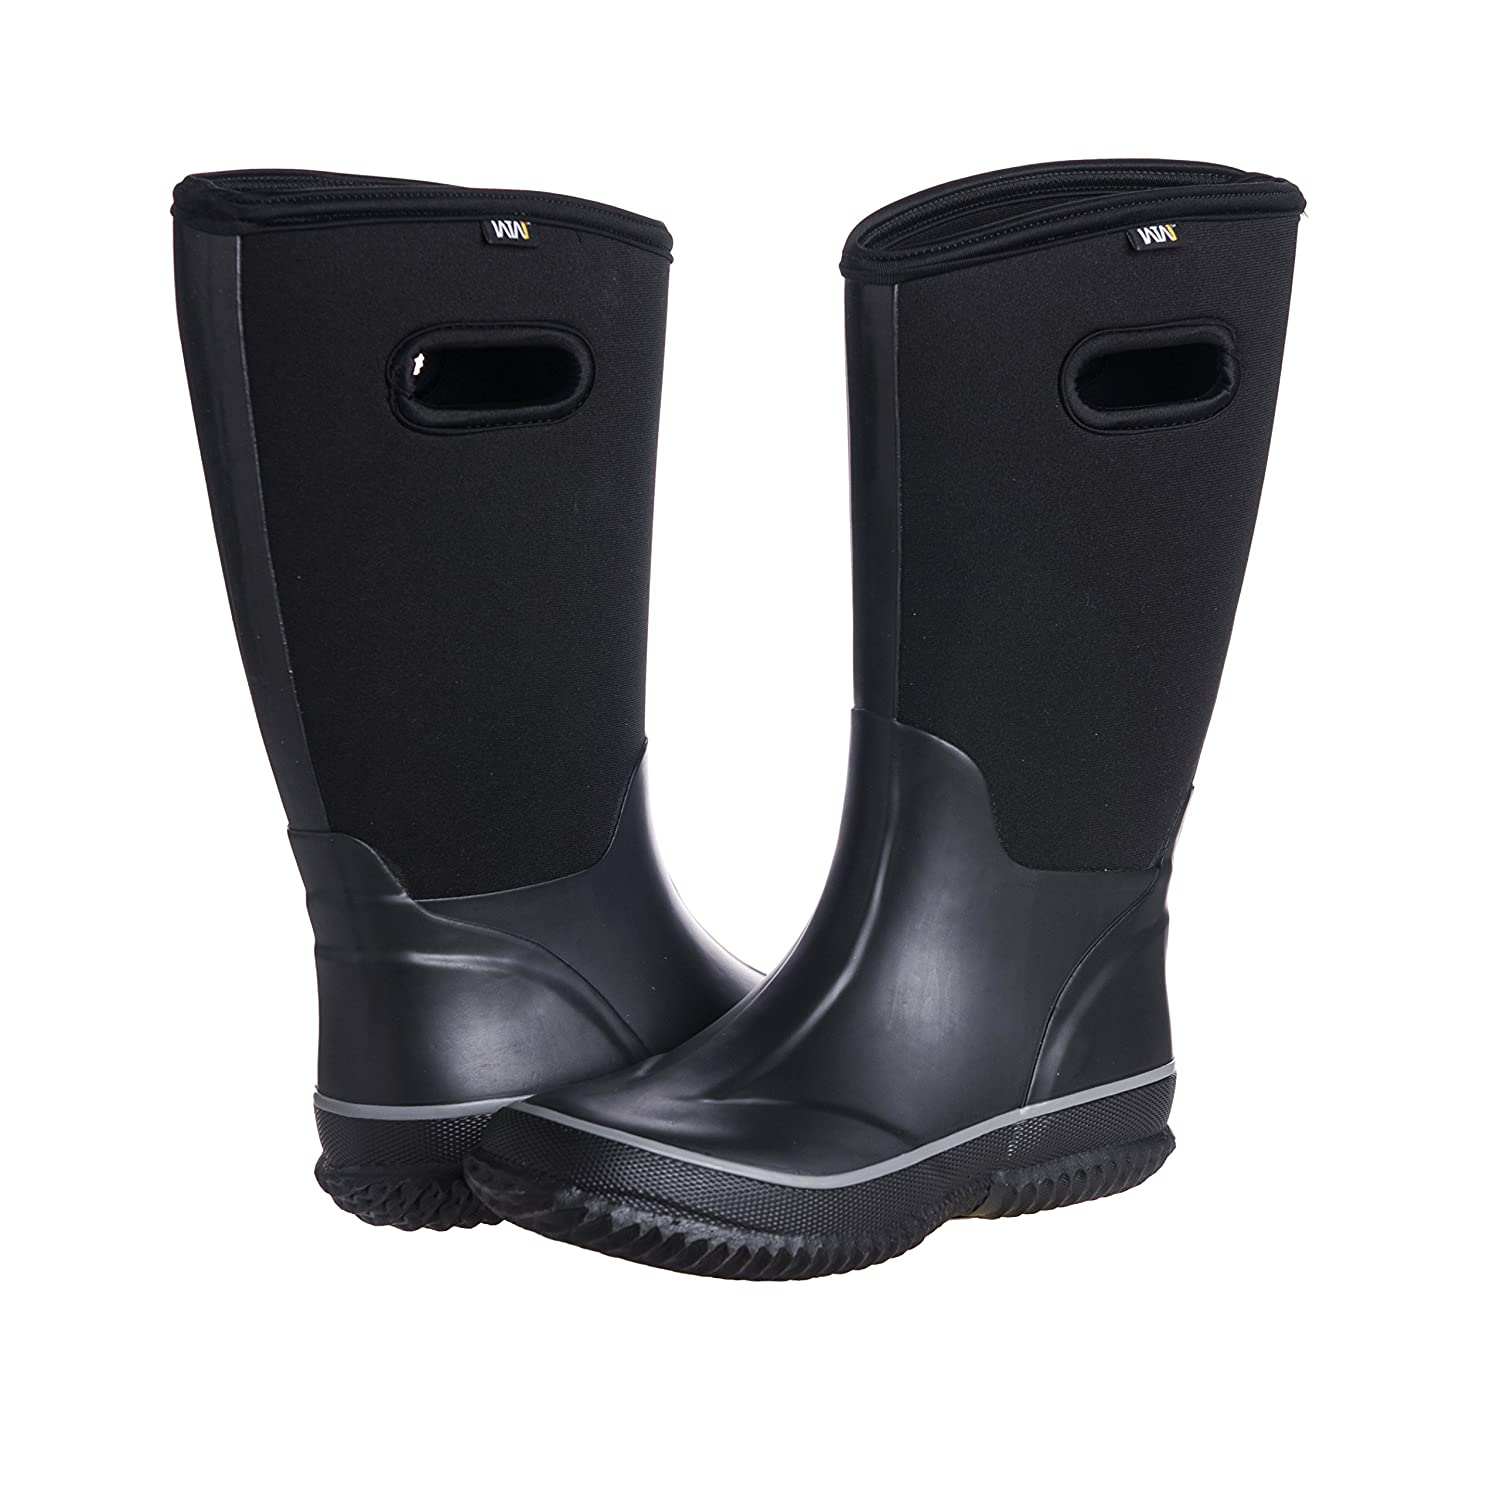 2df18516b9b54 Amazon.com: WTW Men's Neoprene Rubber Rain Snow Boots Black: Shoes